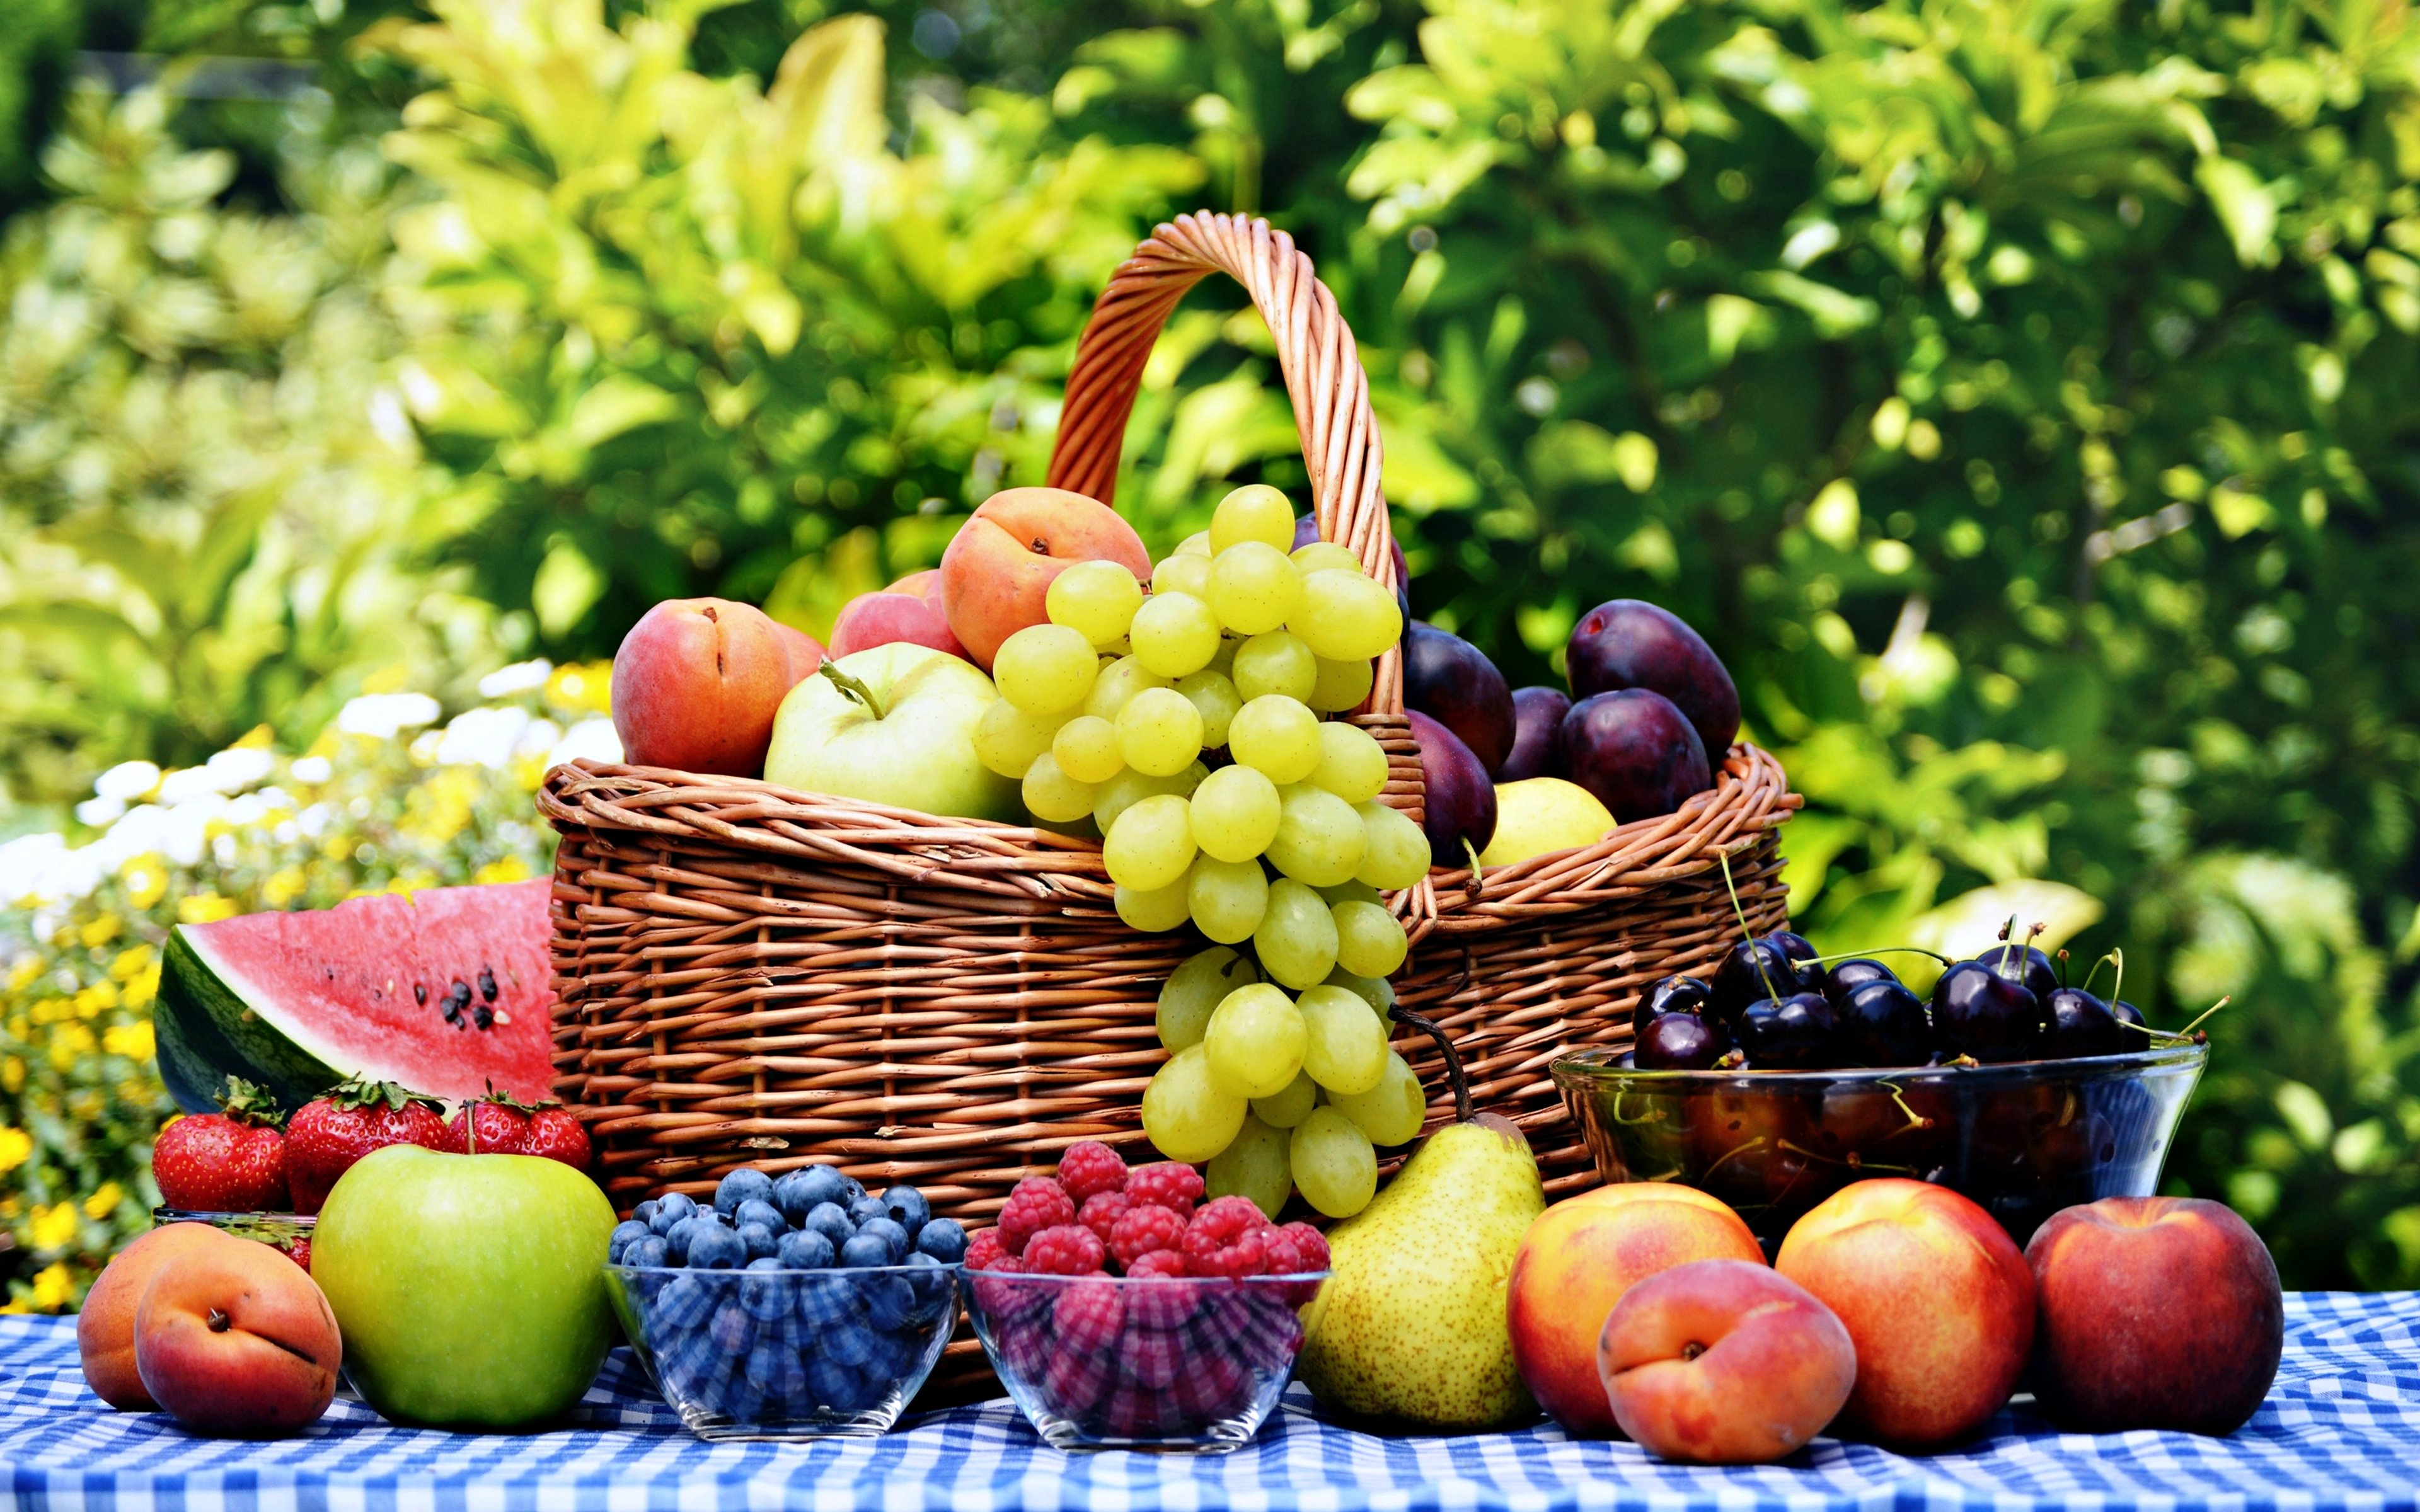 Table Top Fruit Basket Fruits Basket Grape Strawberry Apple Watermelon Blueberry